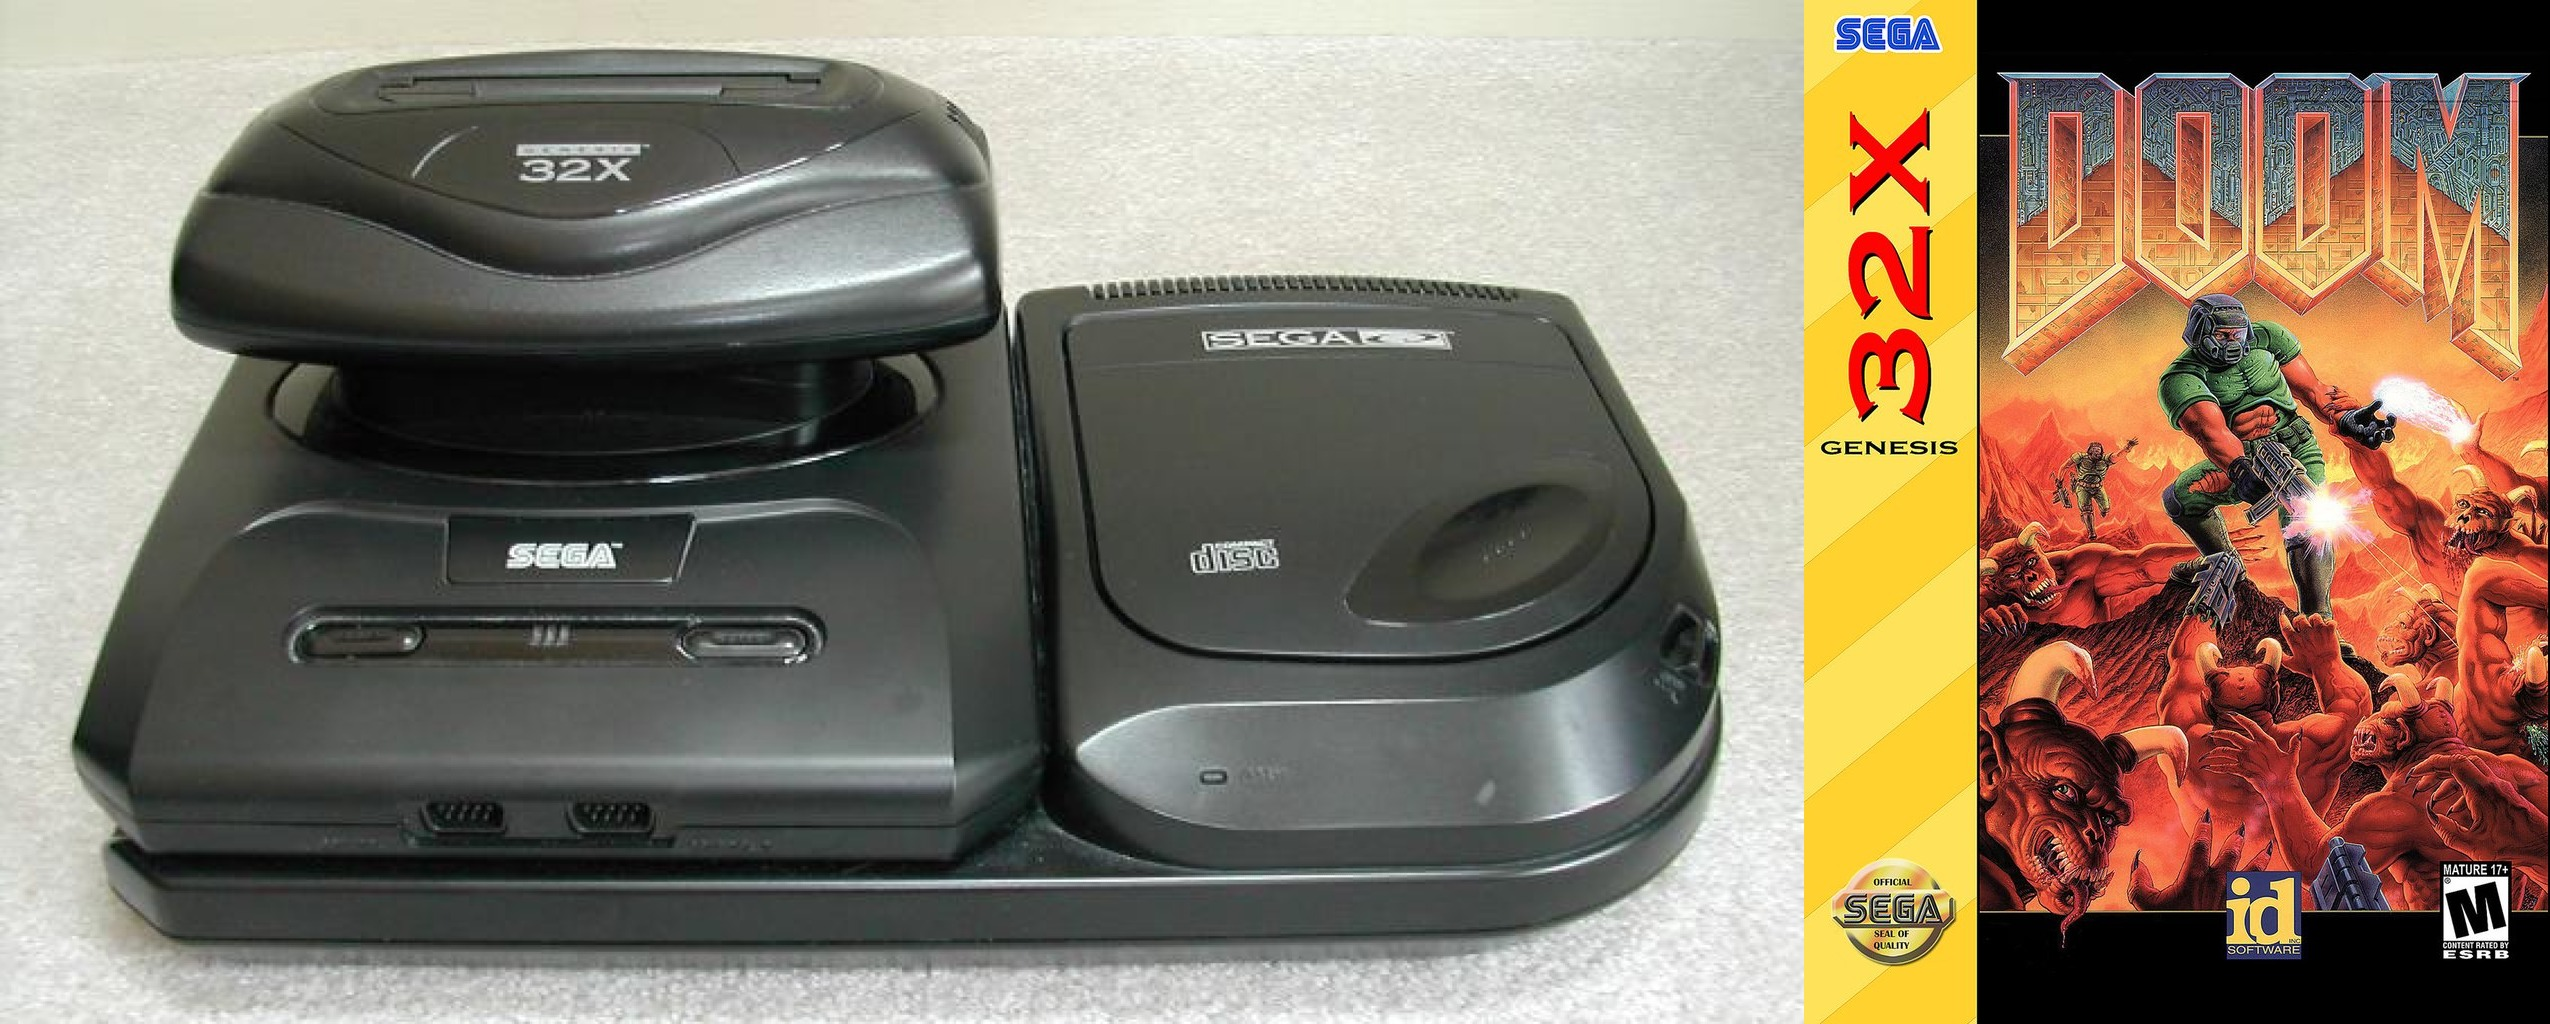 Sega 32X and Sega's port of Doom.